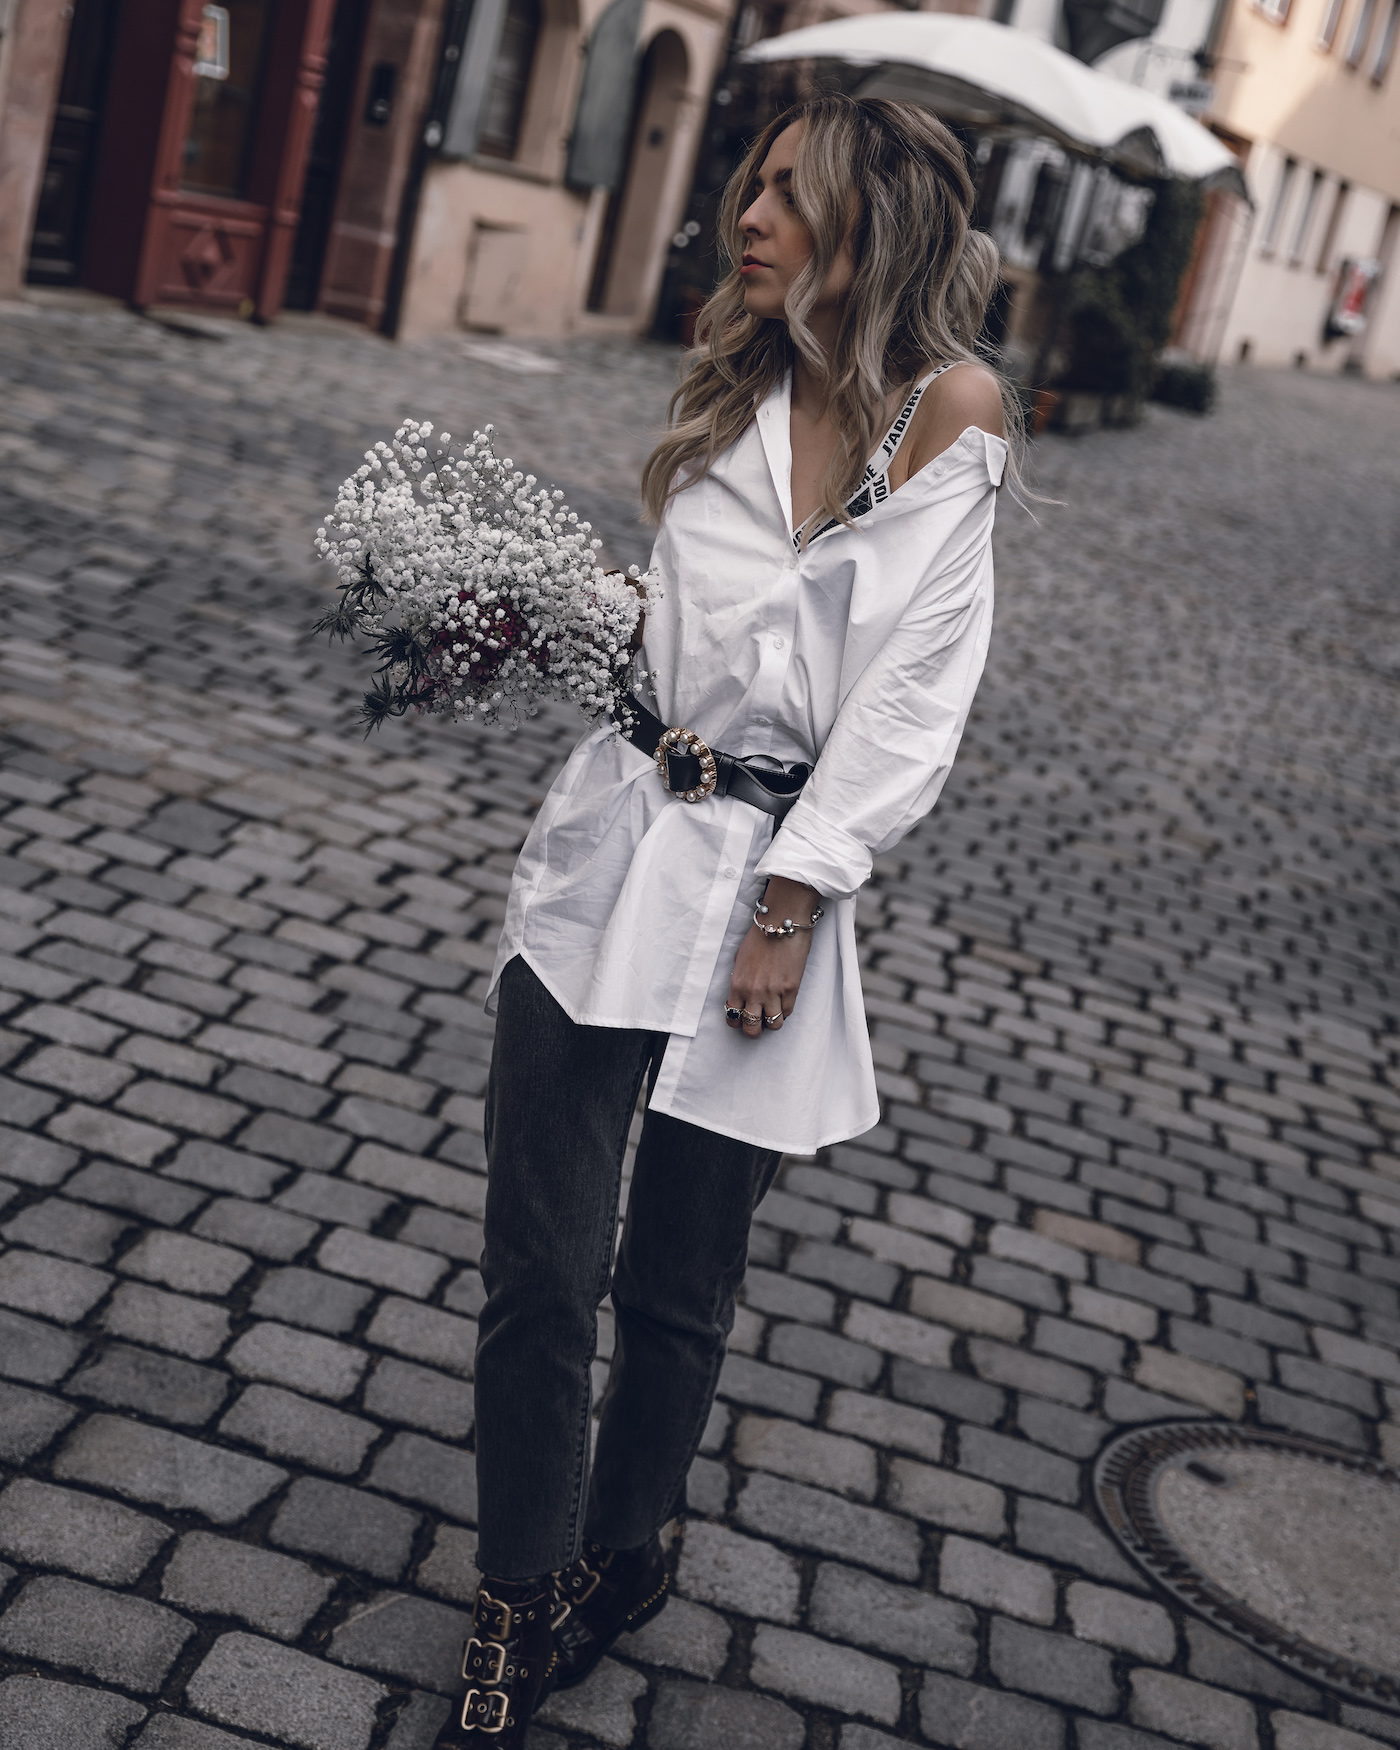 Spring Outfits women 2018 trendy casual chic cute